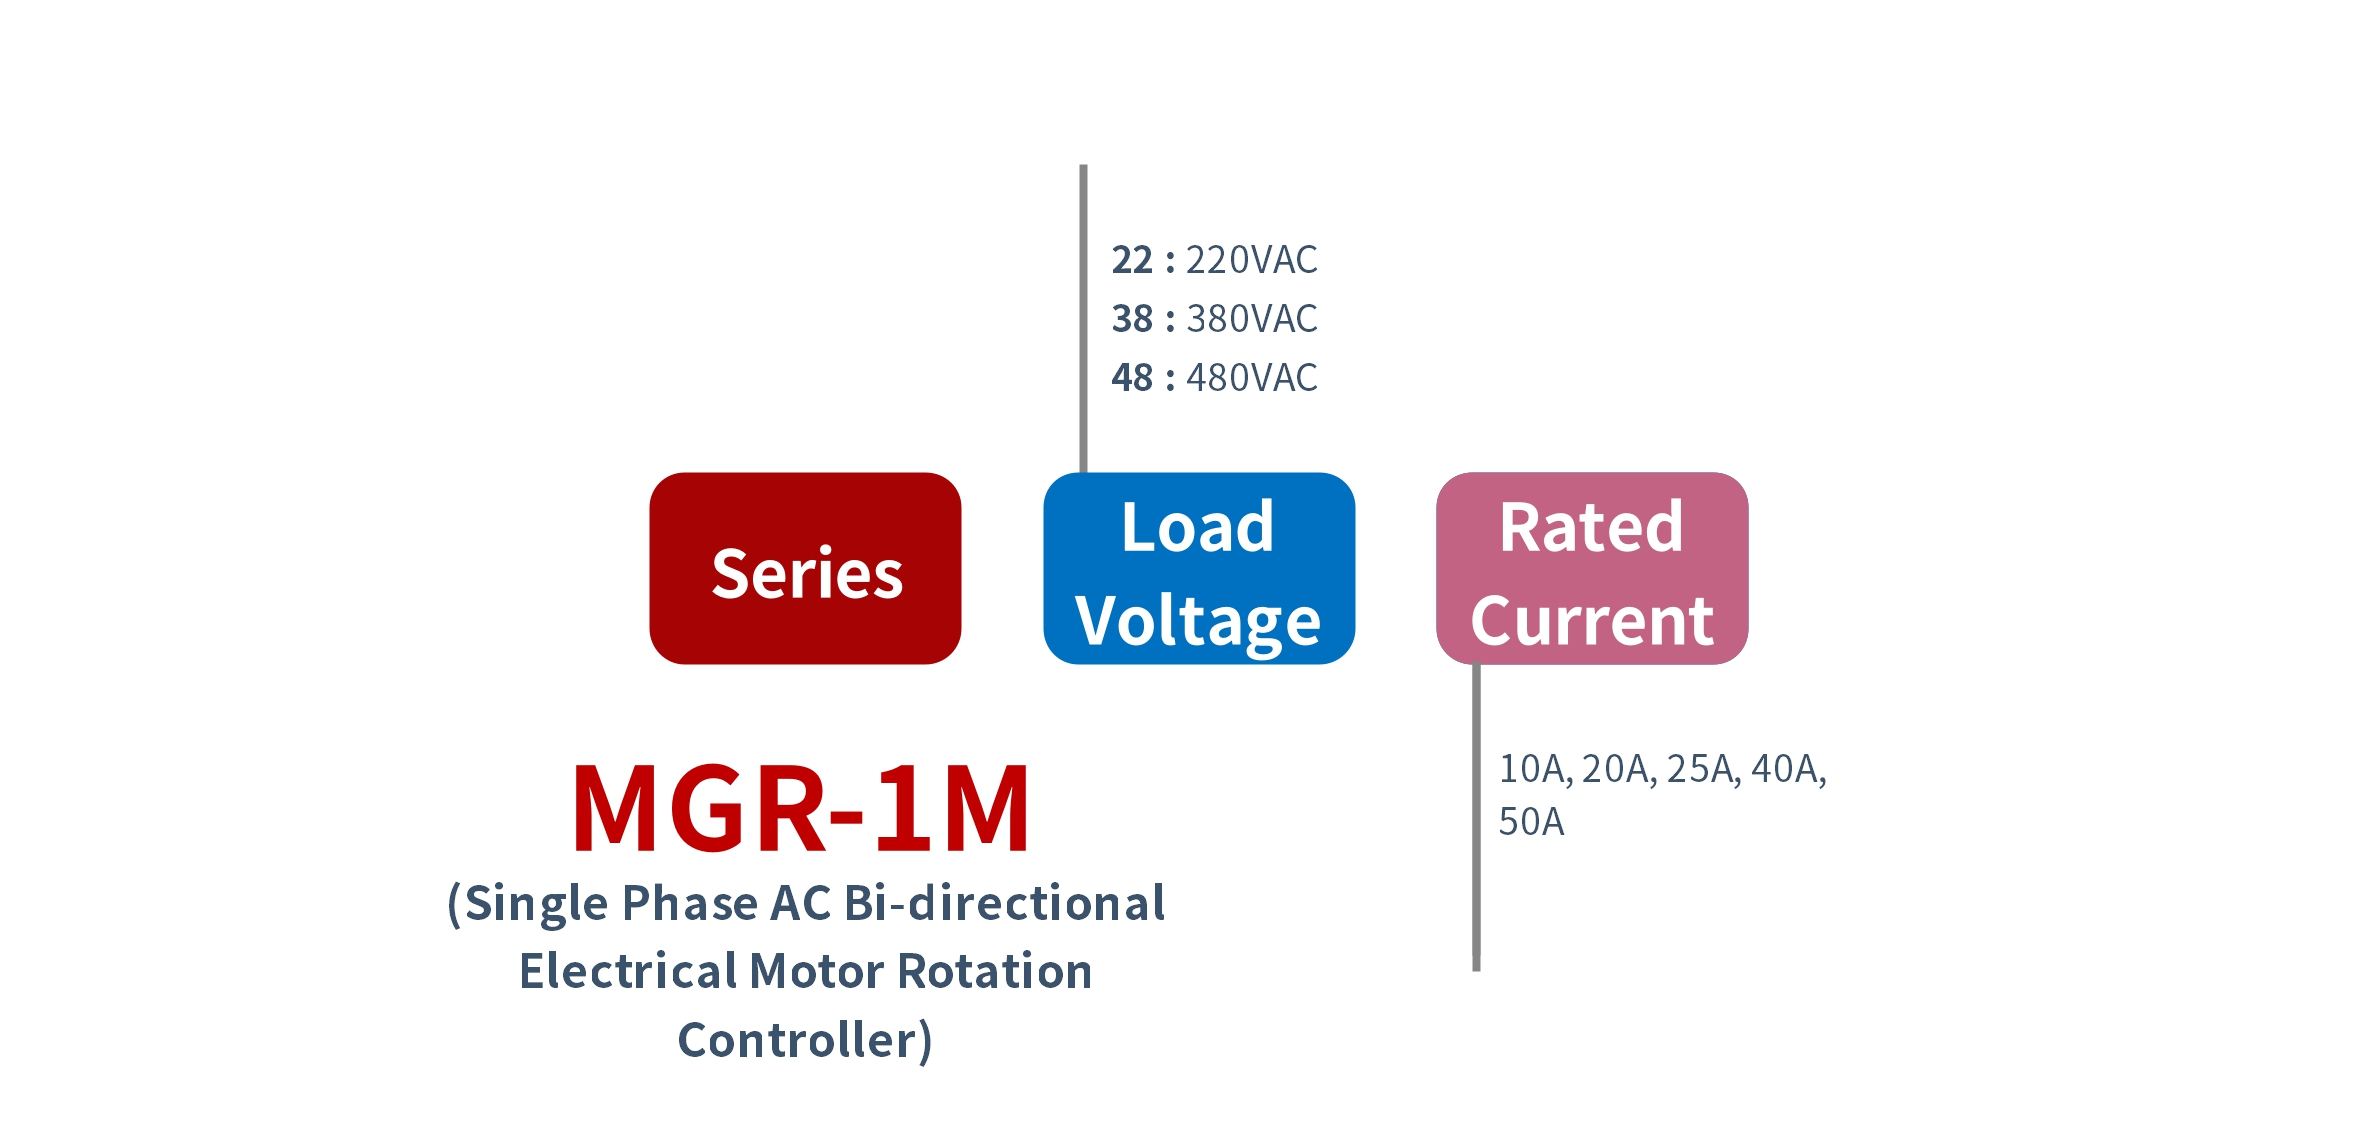 How to order MGR-1M Series Electrical Motor Controller